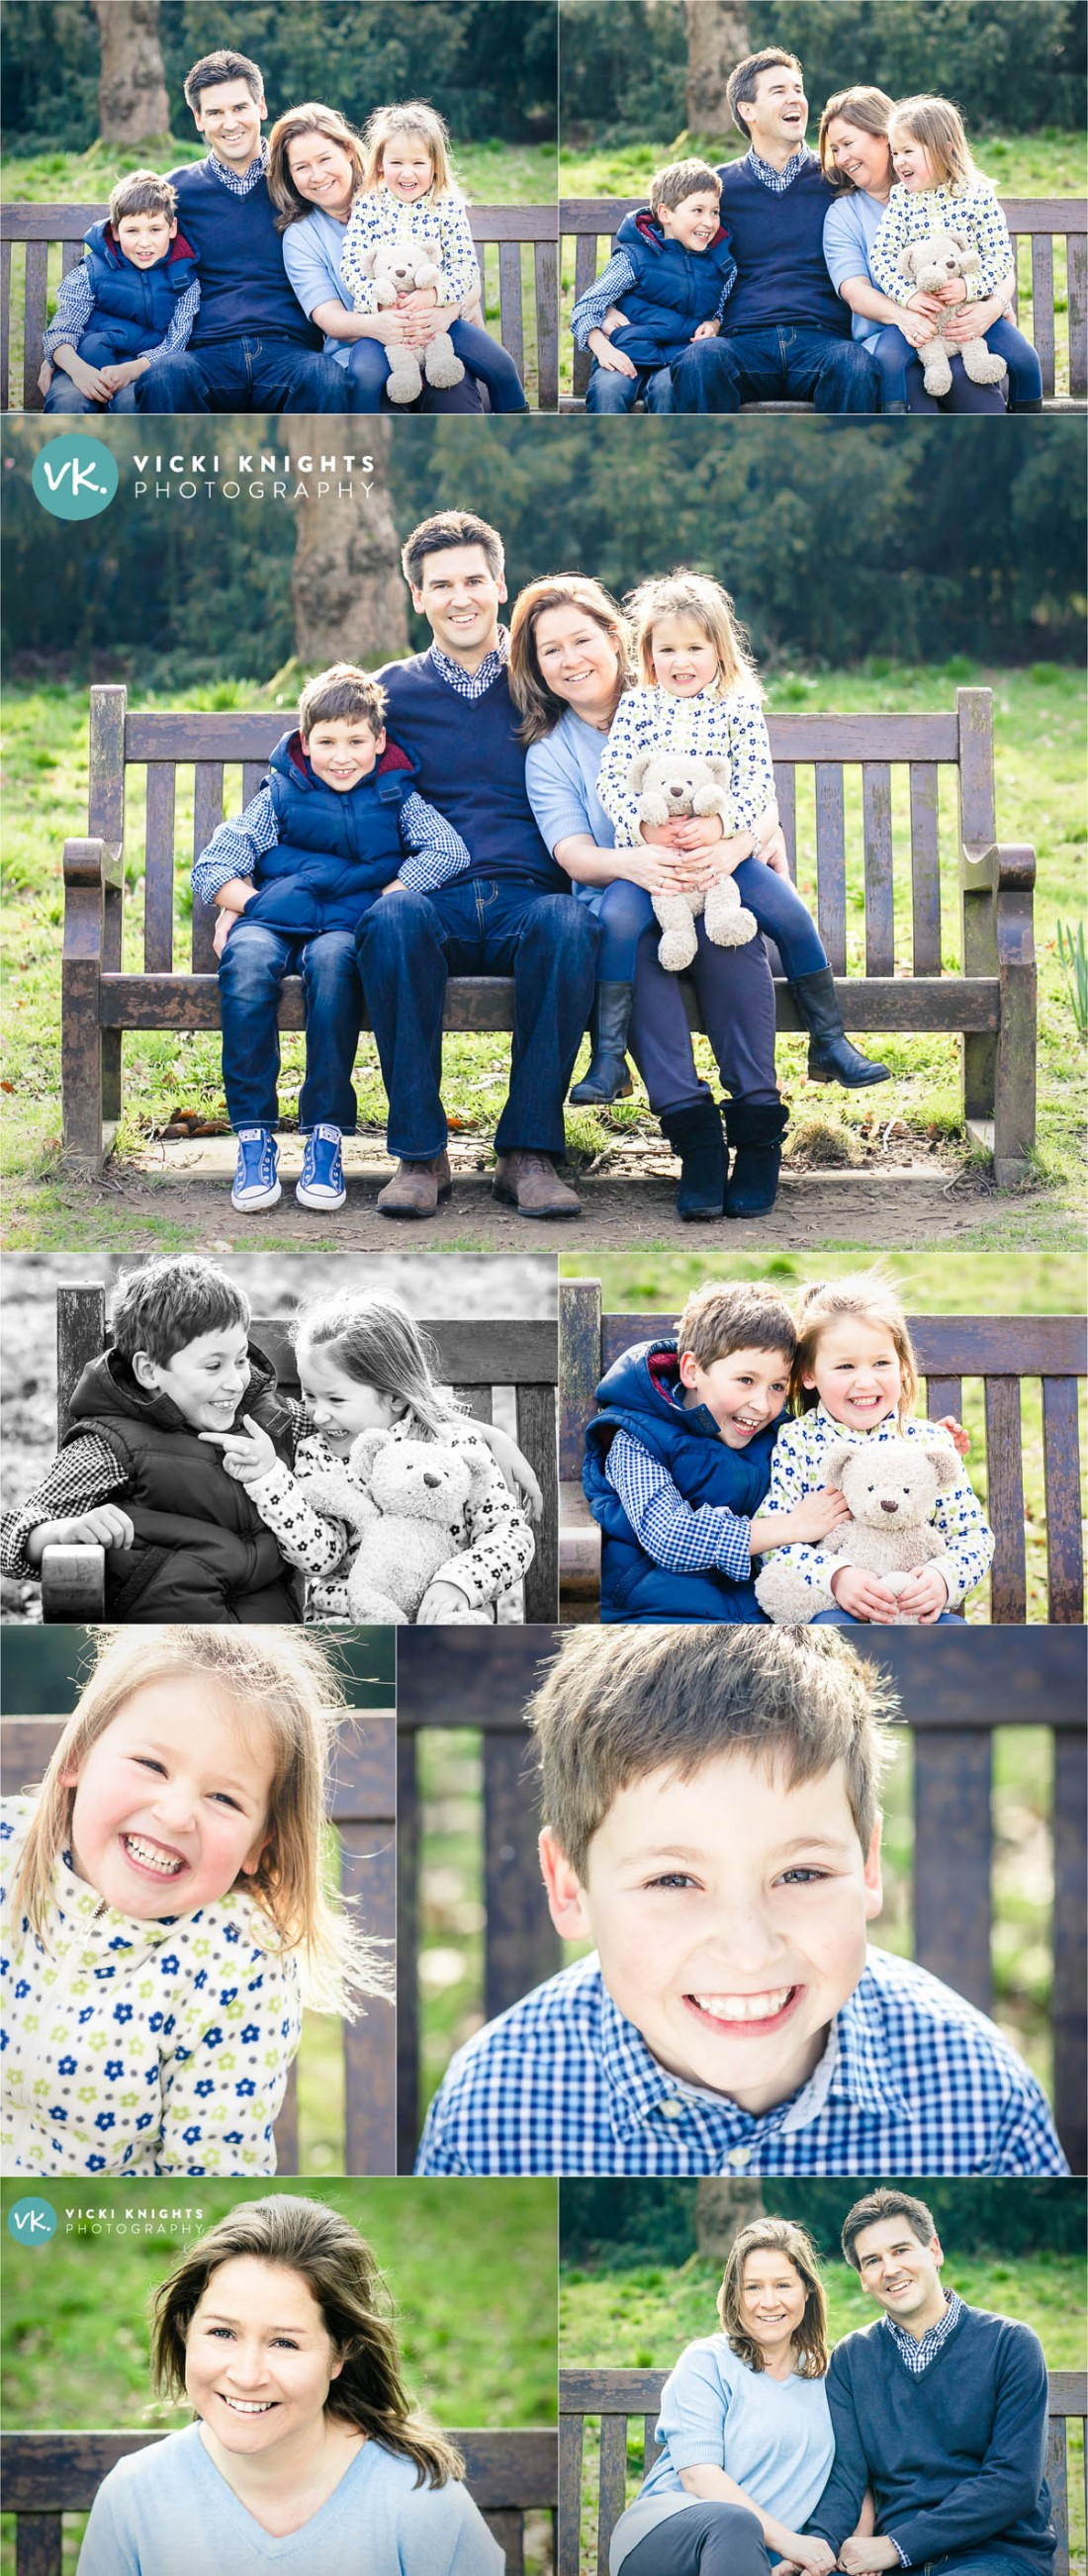 teddington-child-photographer-vicki-knights